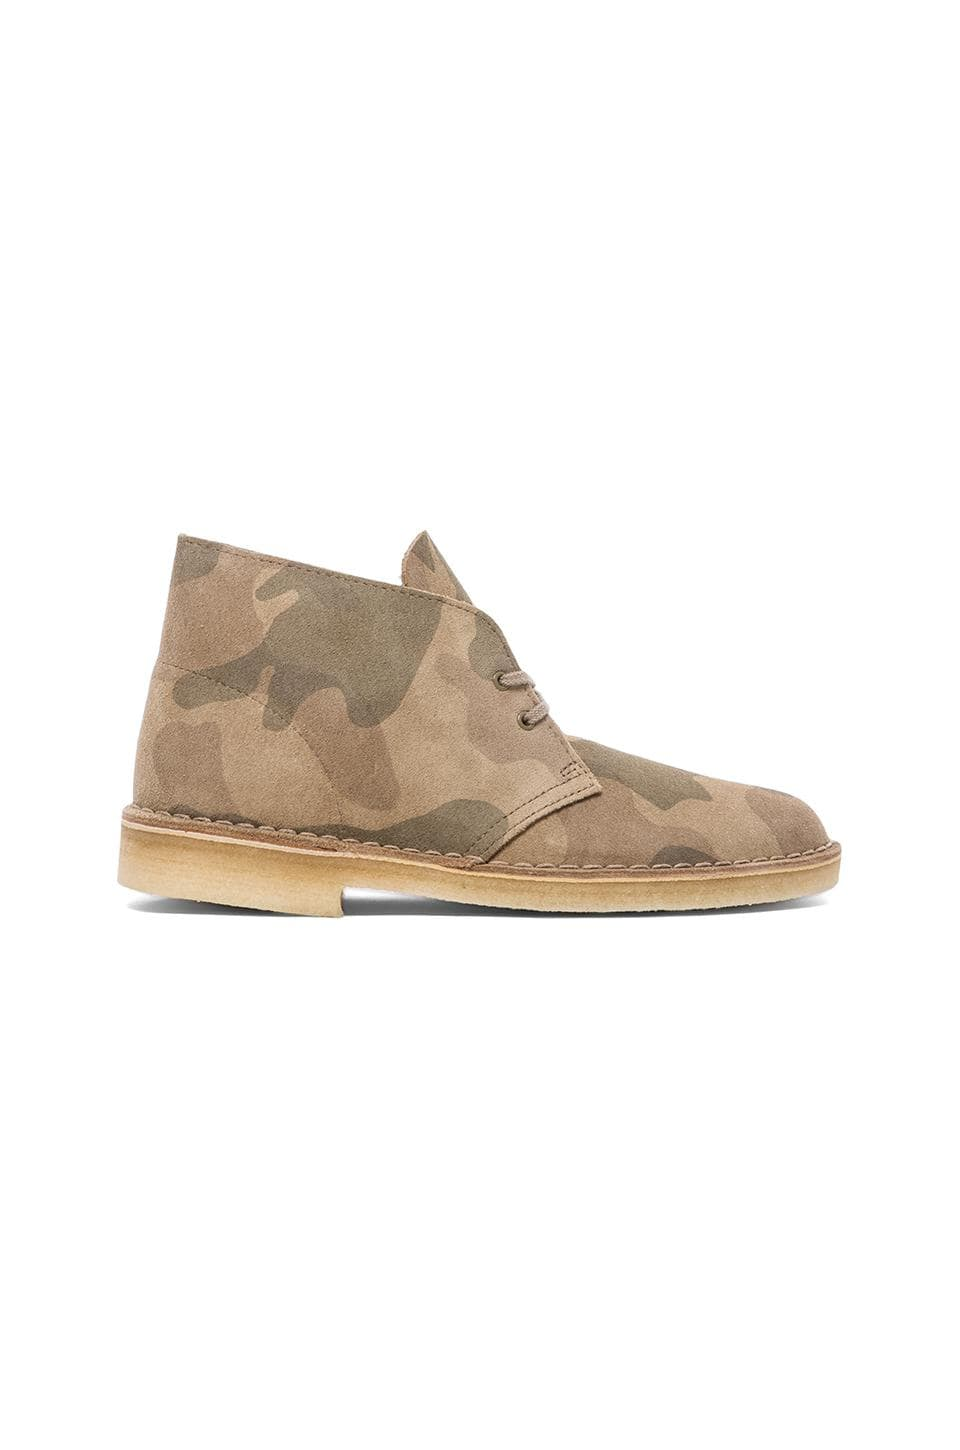 Clarks Originals Desert Boot in Sand Camo Suede